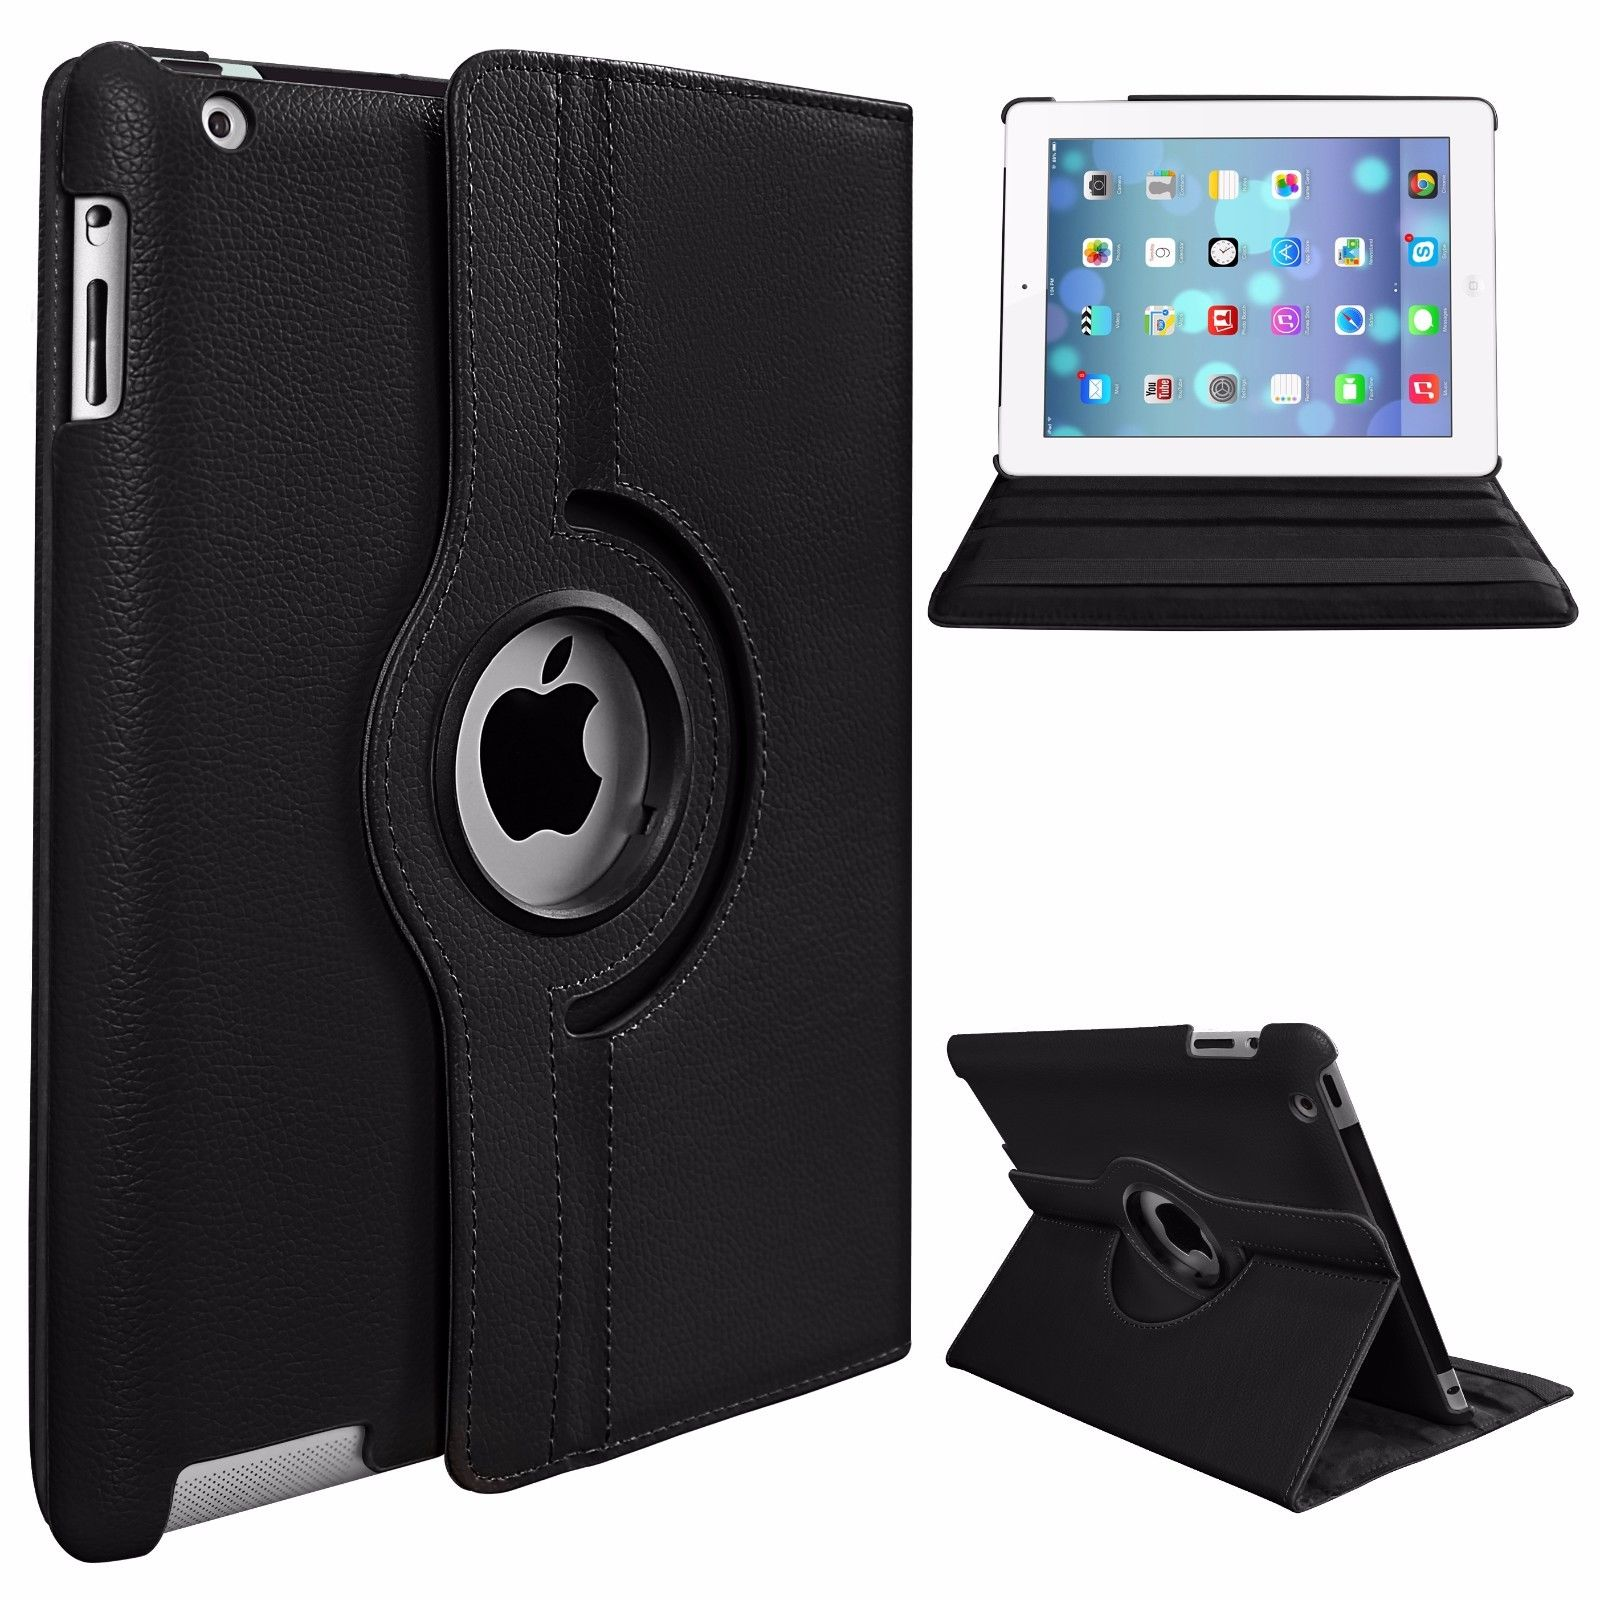 Protective Cover 360-degree Rotating Leather Case for Apple ipad  Air/ipad5 black